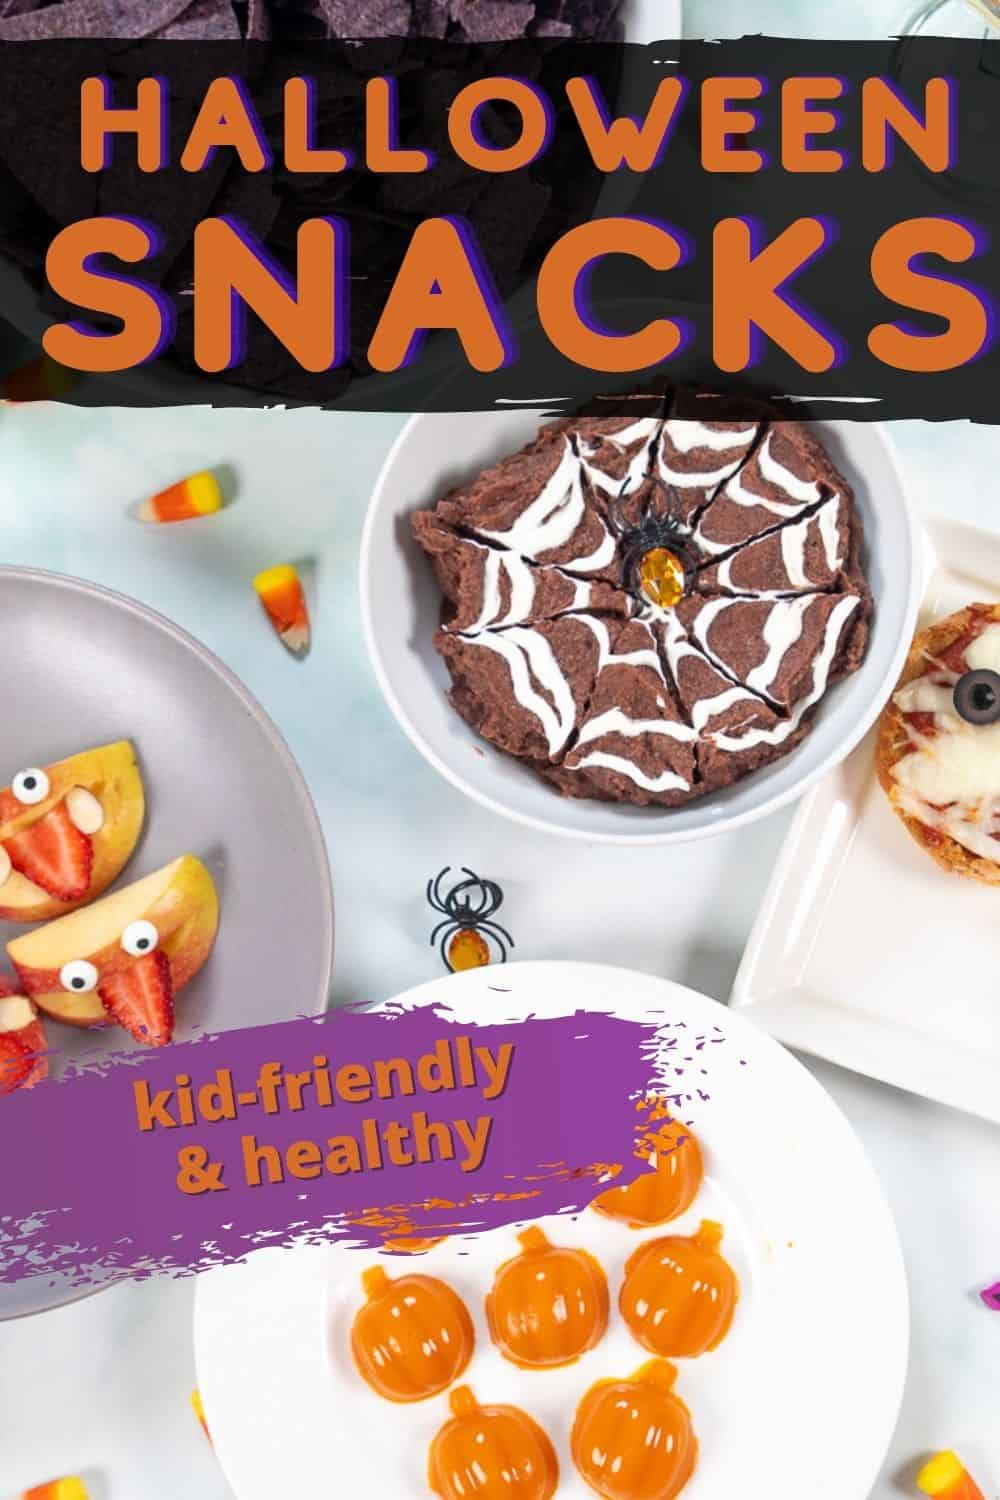 Make Halloween fun with these 5 easy and healthy Halloween snacks! From a Spiderweb Dip to Pumpkin Gummies to Apple Monsters to Mummy Pizzas to Candy Corn Parfaits, these simple festive Halloween Treats are the perfect recipes to add some fun to your fall parties with very little effort required.